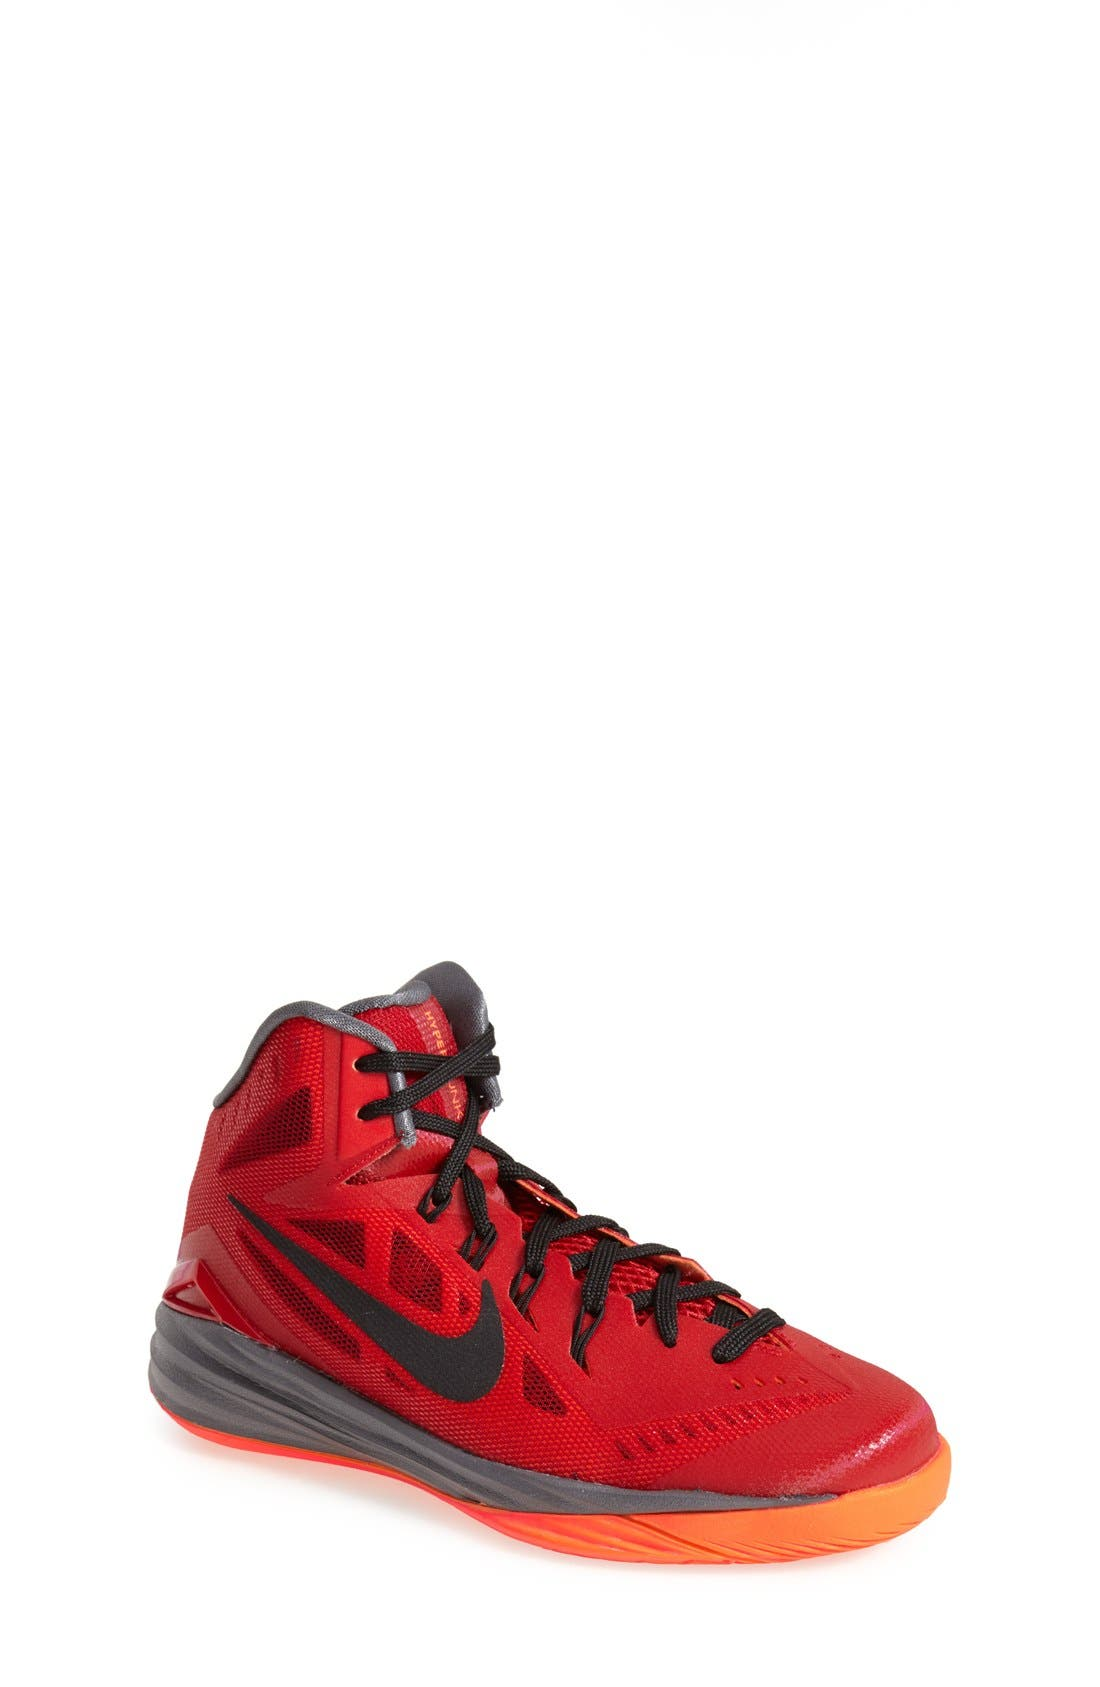 Alternate Image 1 Selected - Nike 'Hyperdunk 2014' Basketball Shoe (Big Kids)